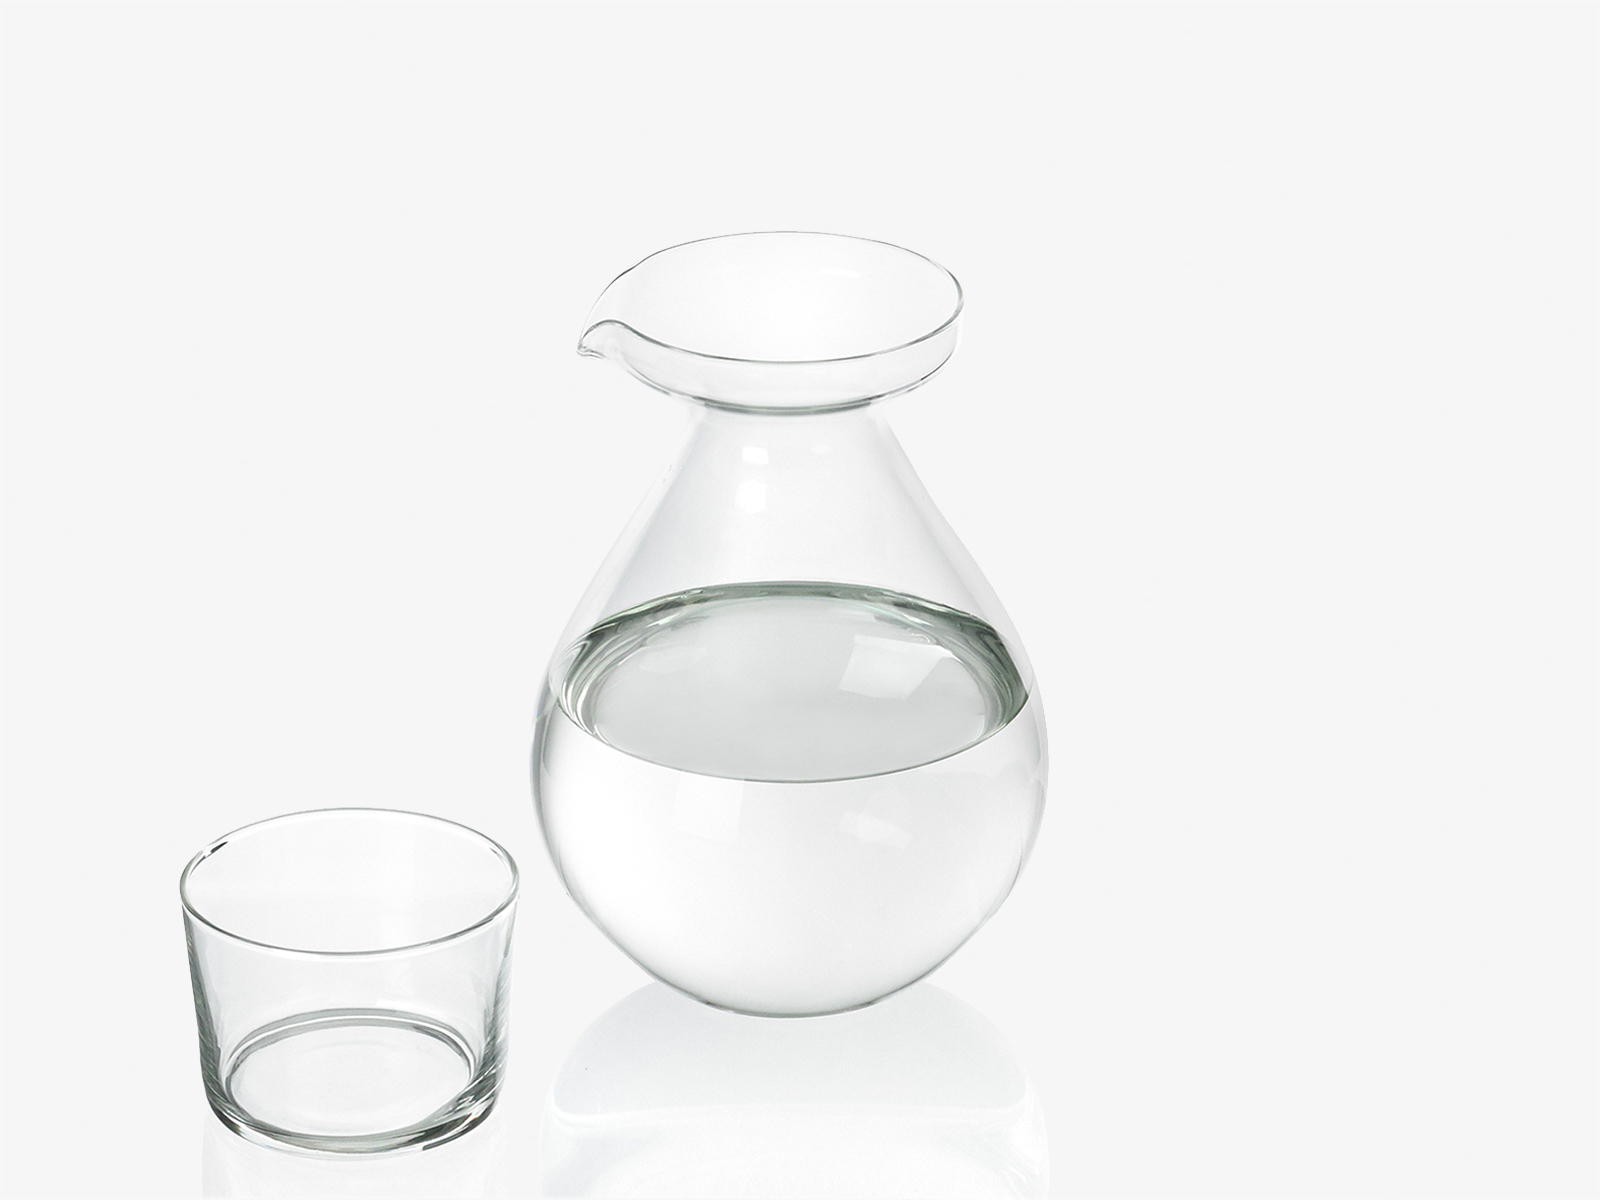 Drop jug and glass